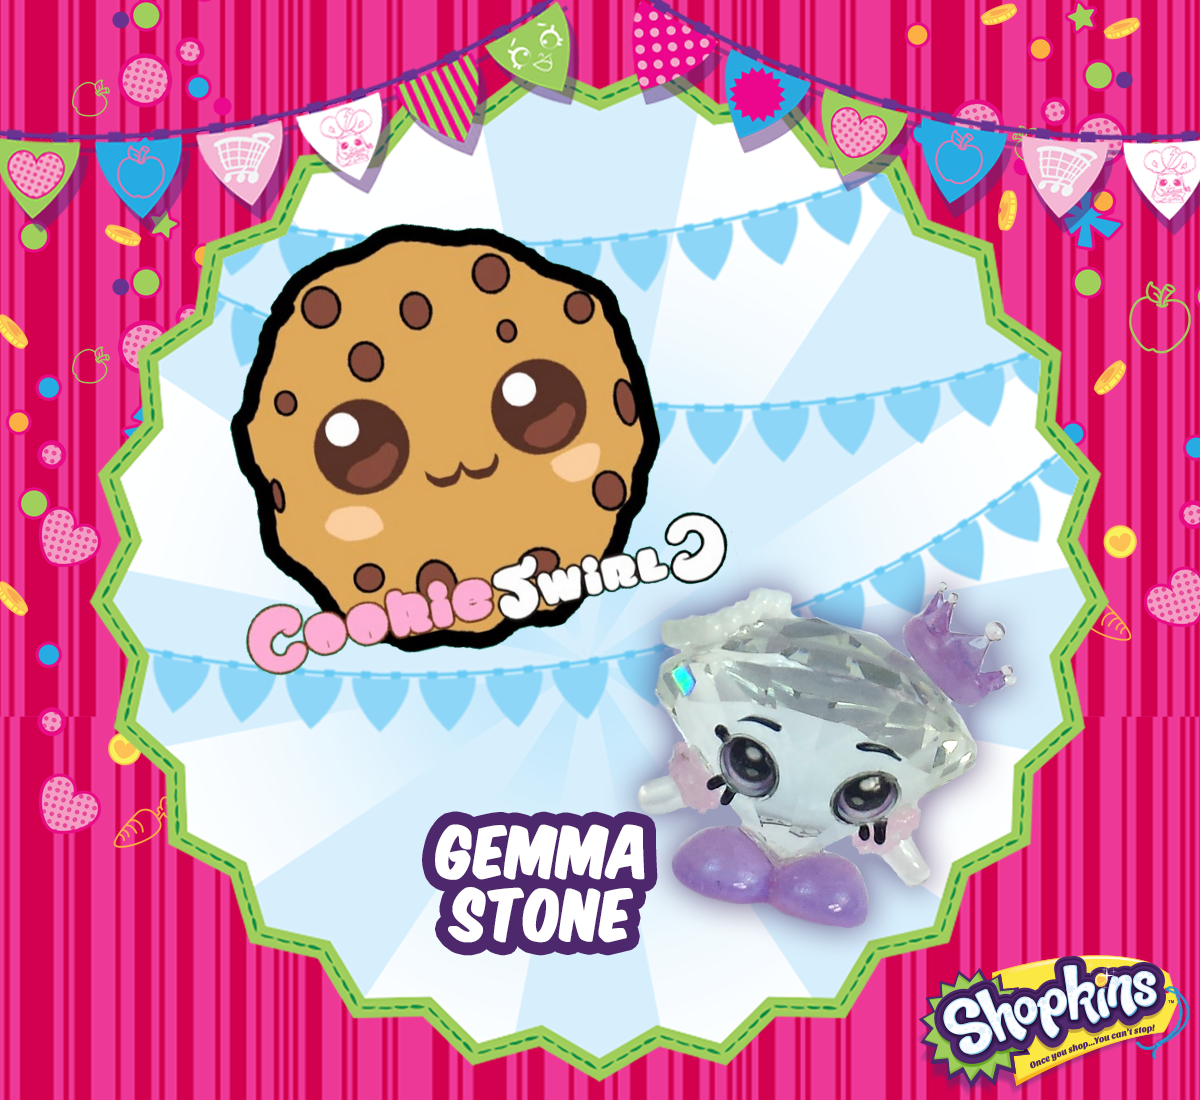 Cookie Swirl On Twitter One Of A Kind Shopkin Gemma Stone Episode Will Be Posted Tomorrow At Tco BUxtcFvtUr Dont Miss It